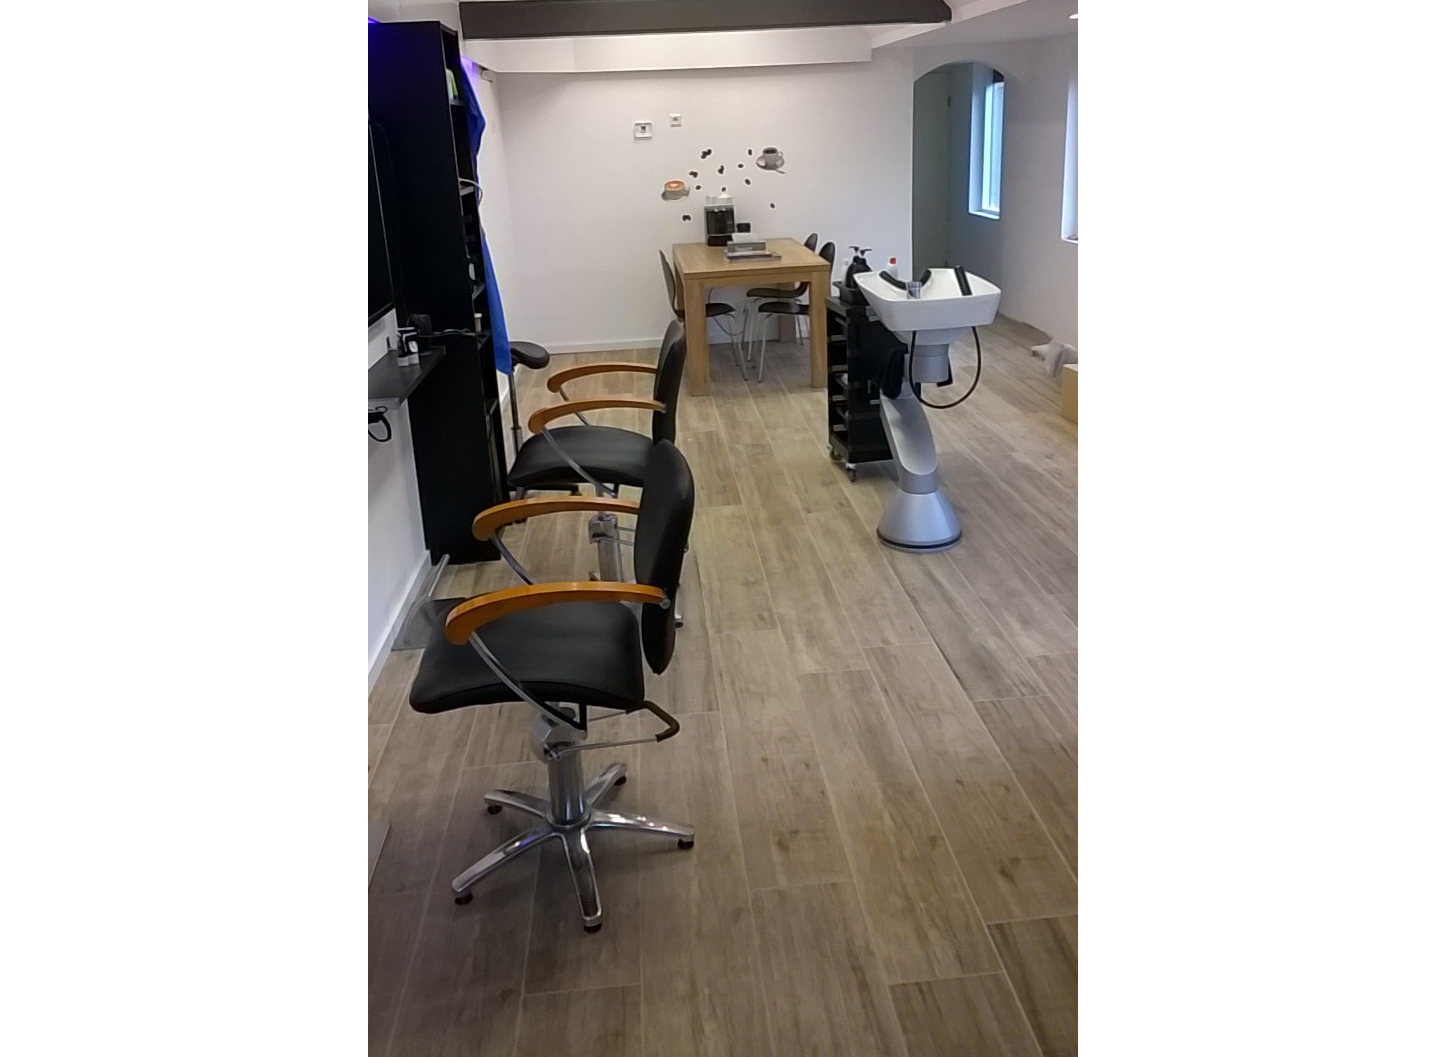 Binnen in de salon